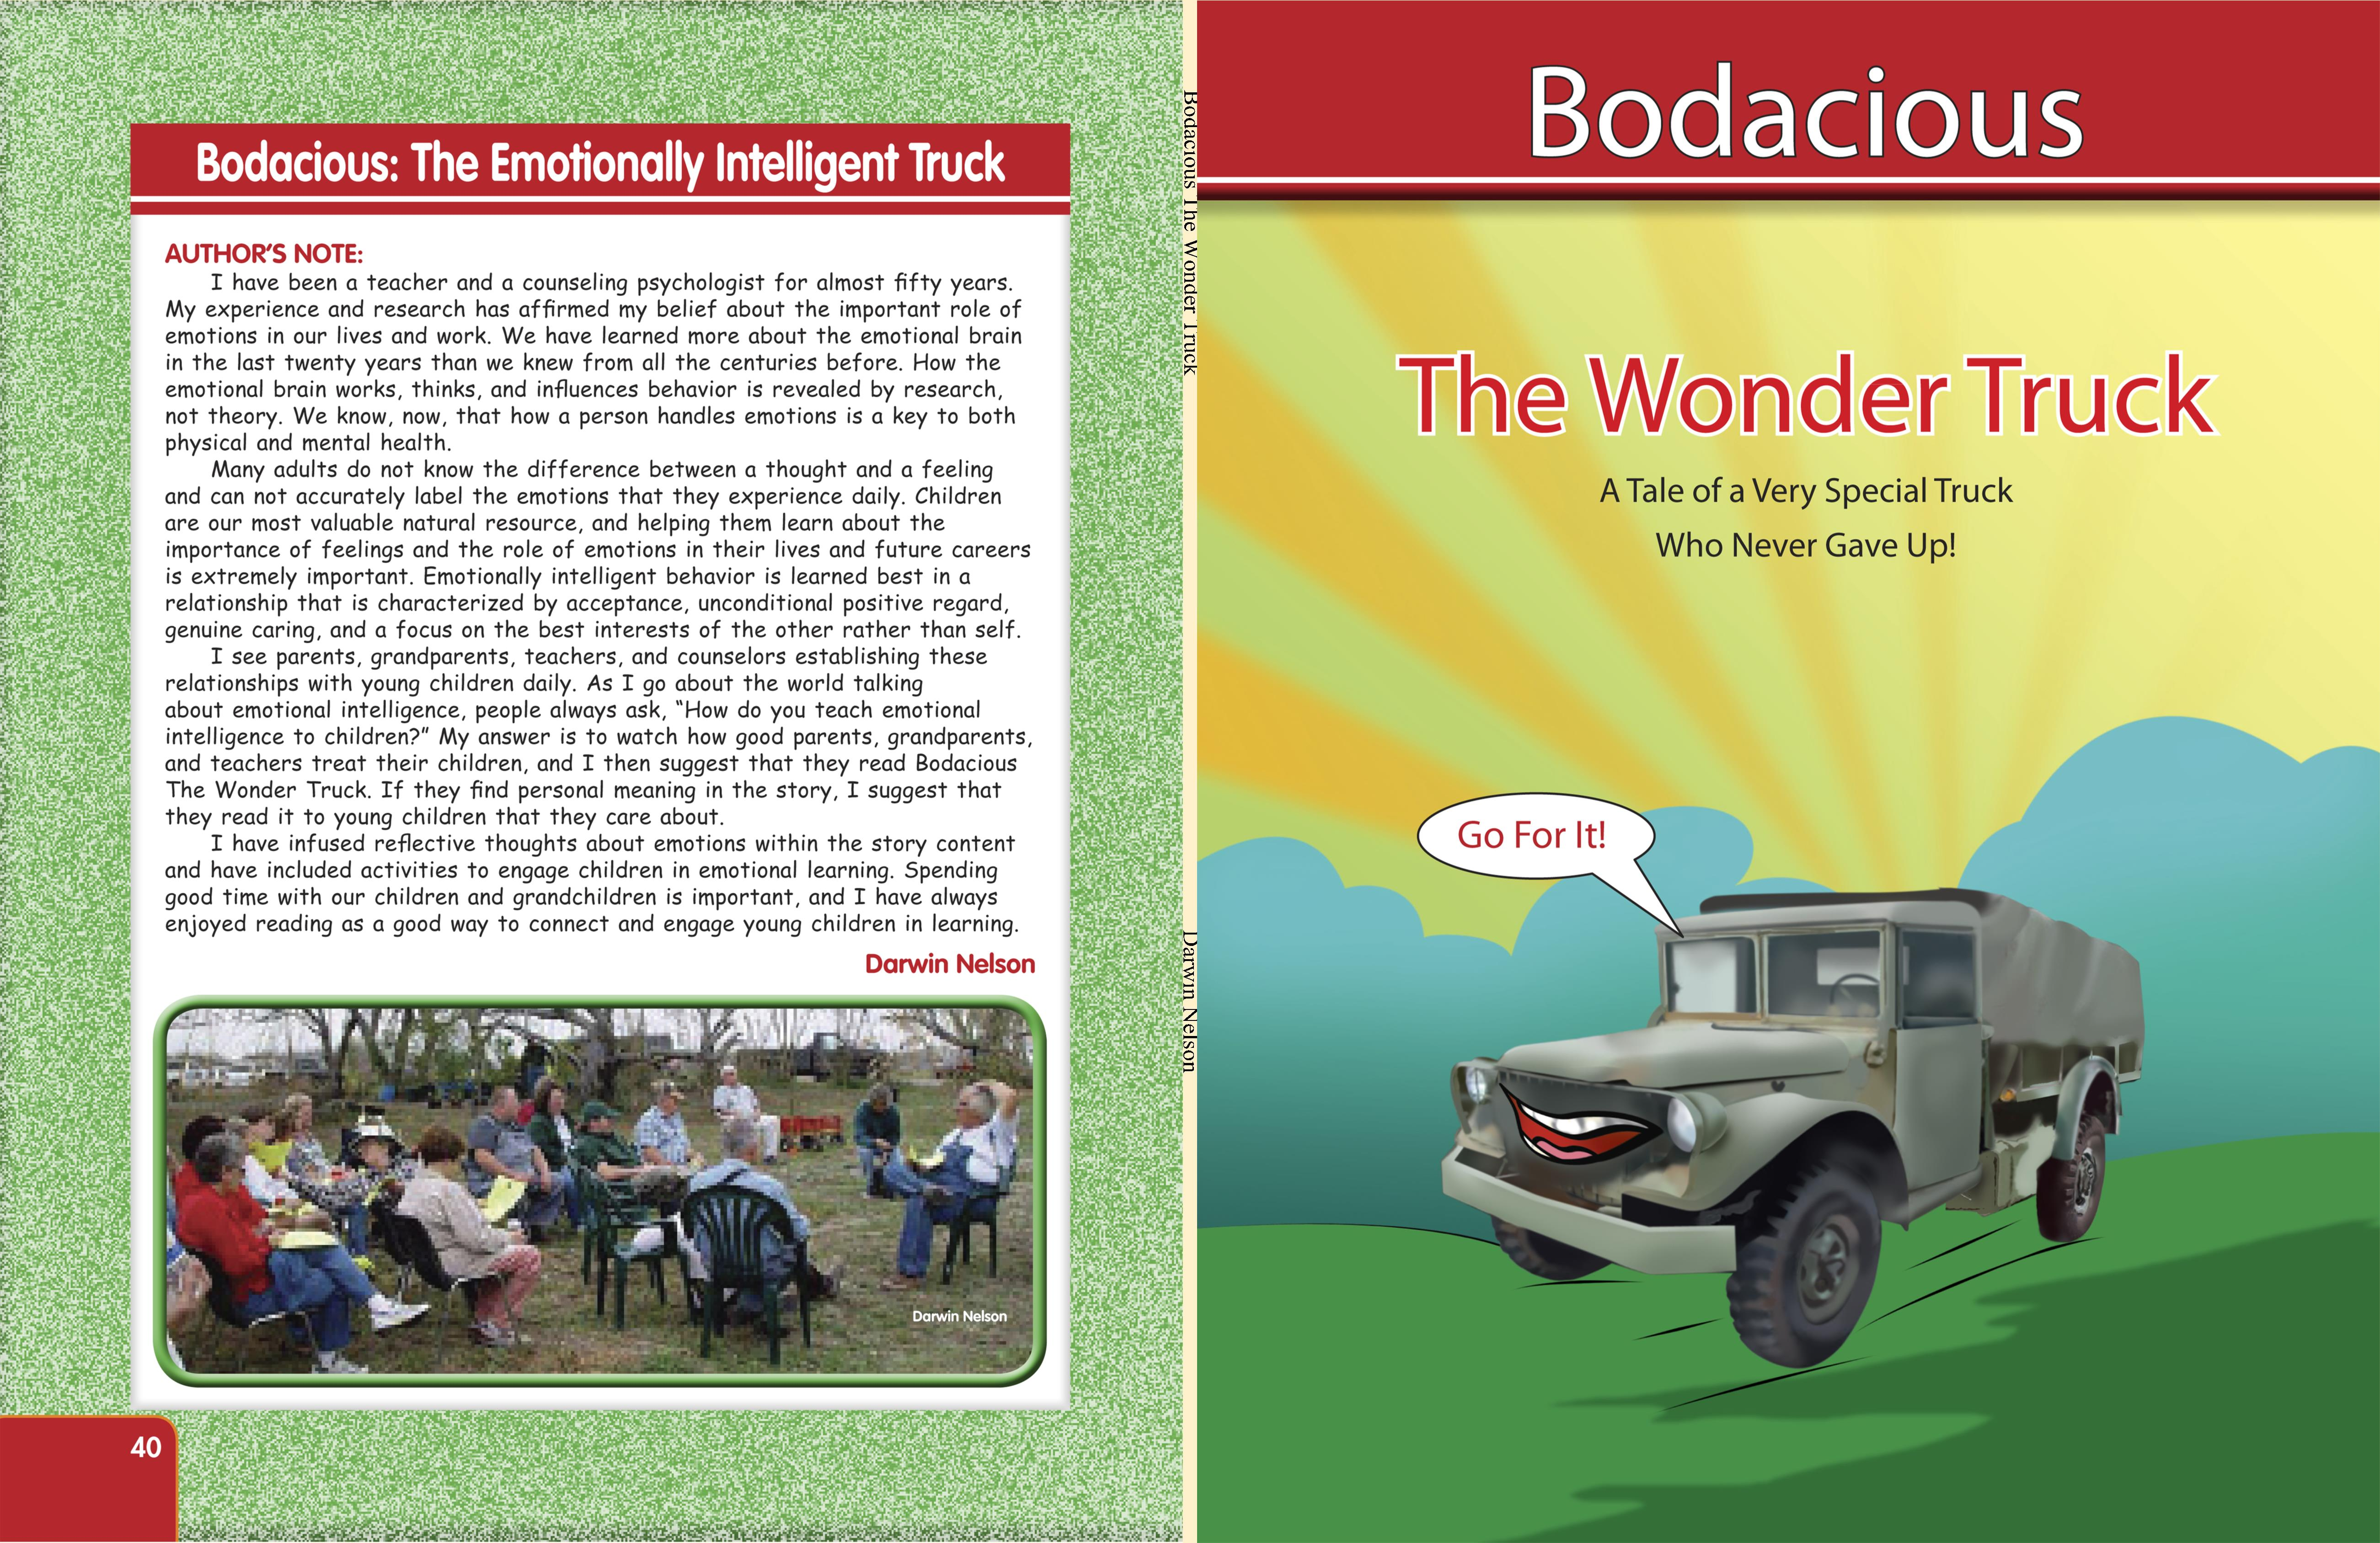 Bodacious The Wonder Truck cover image